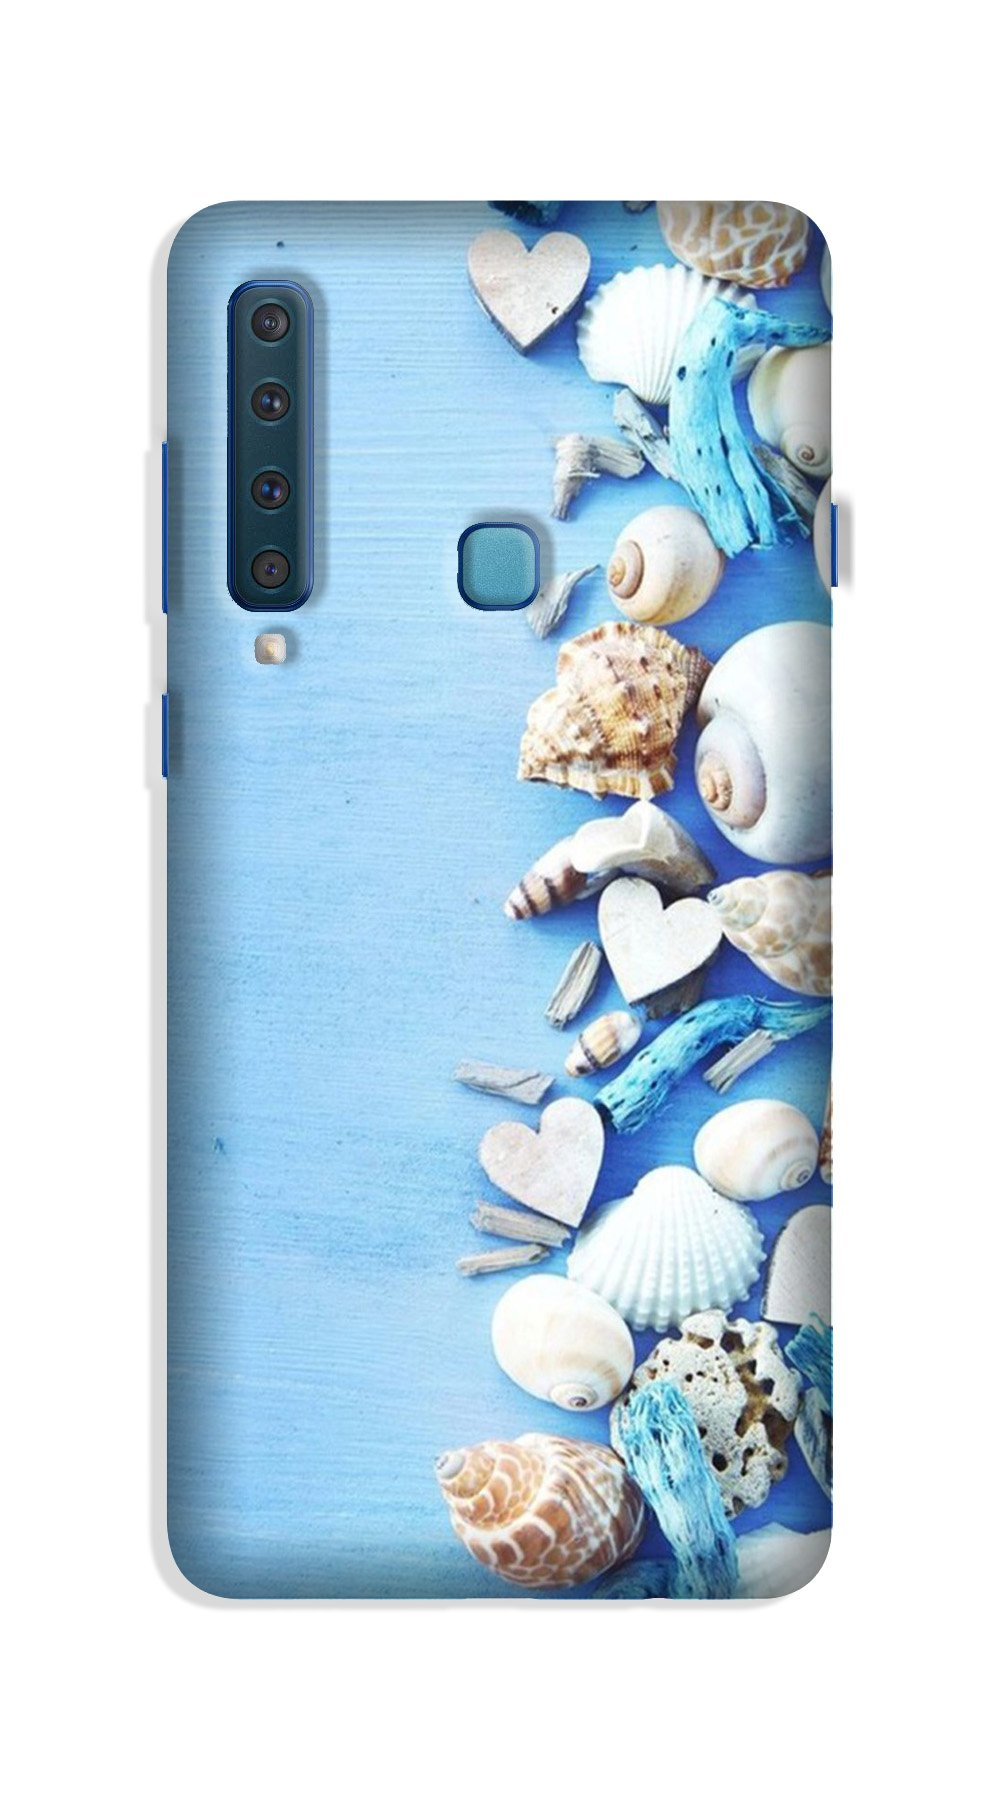 Sea Shells2 Case for Galaxy A9 (2018)